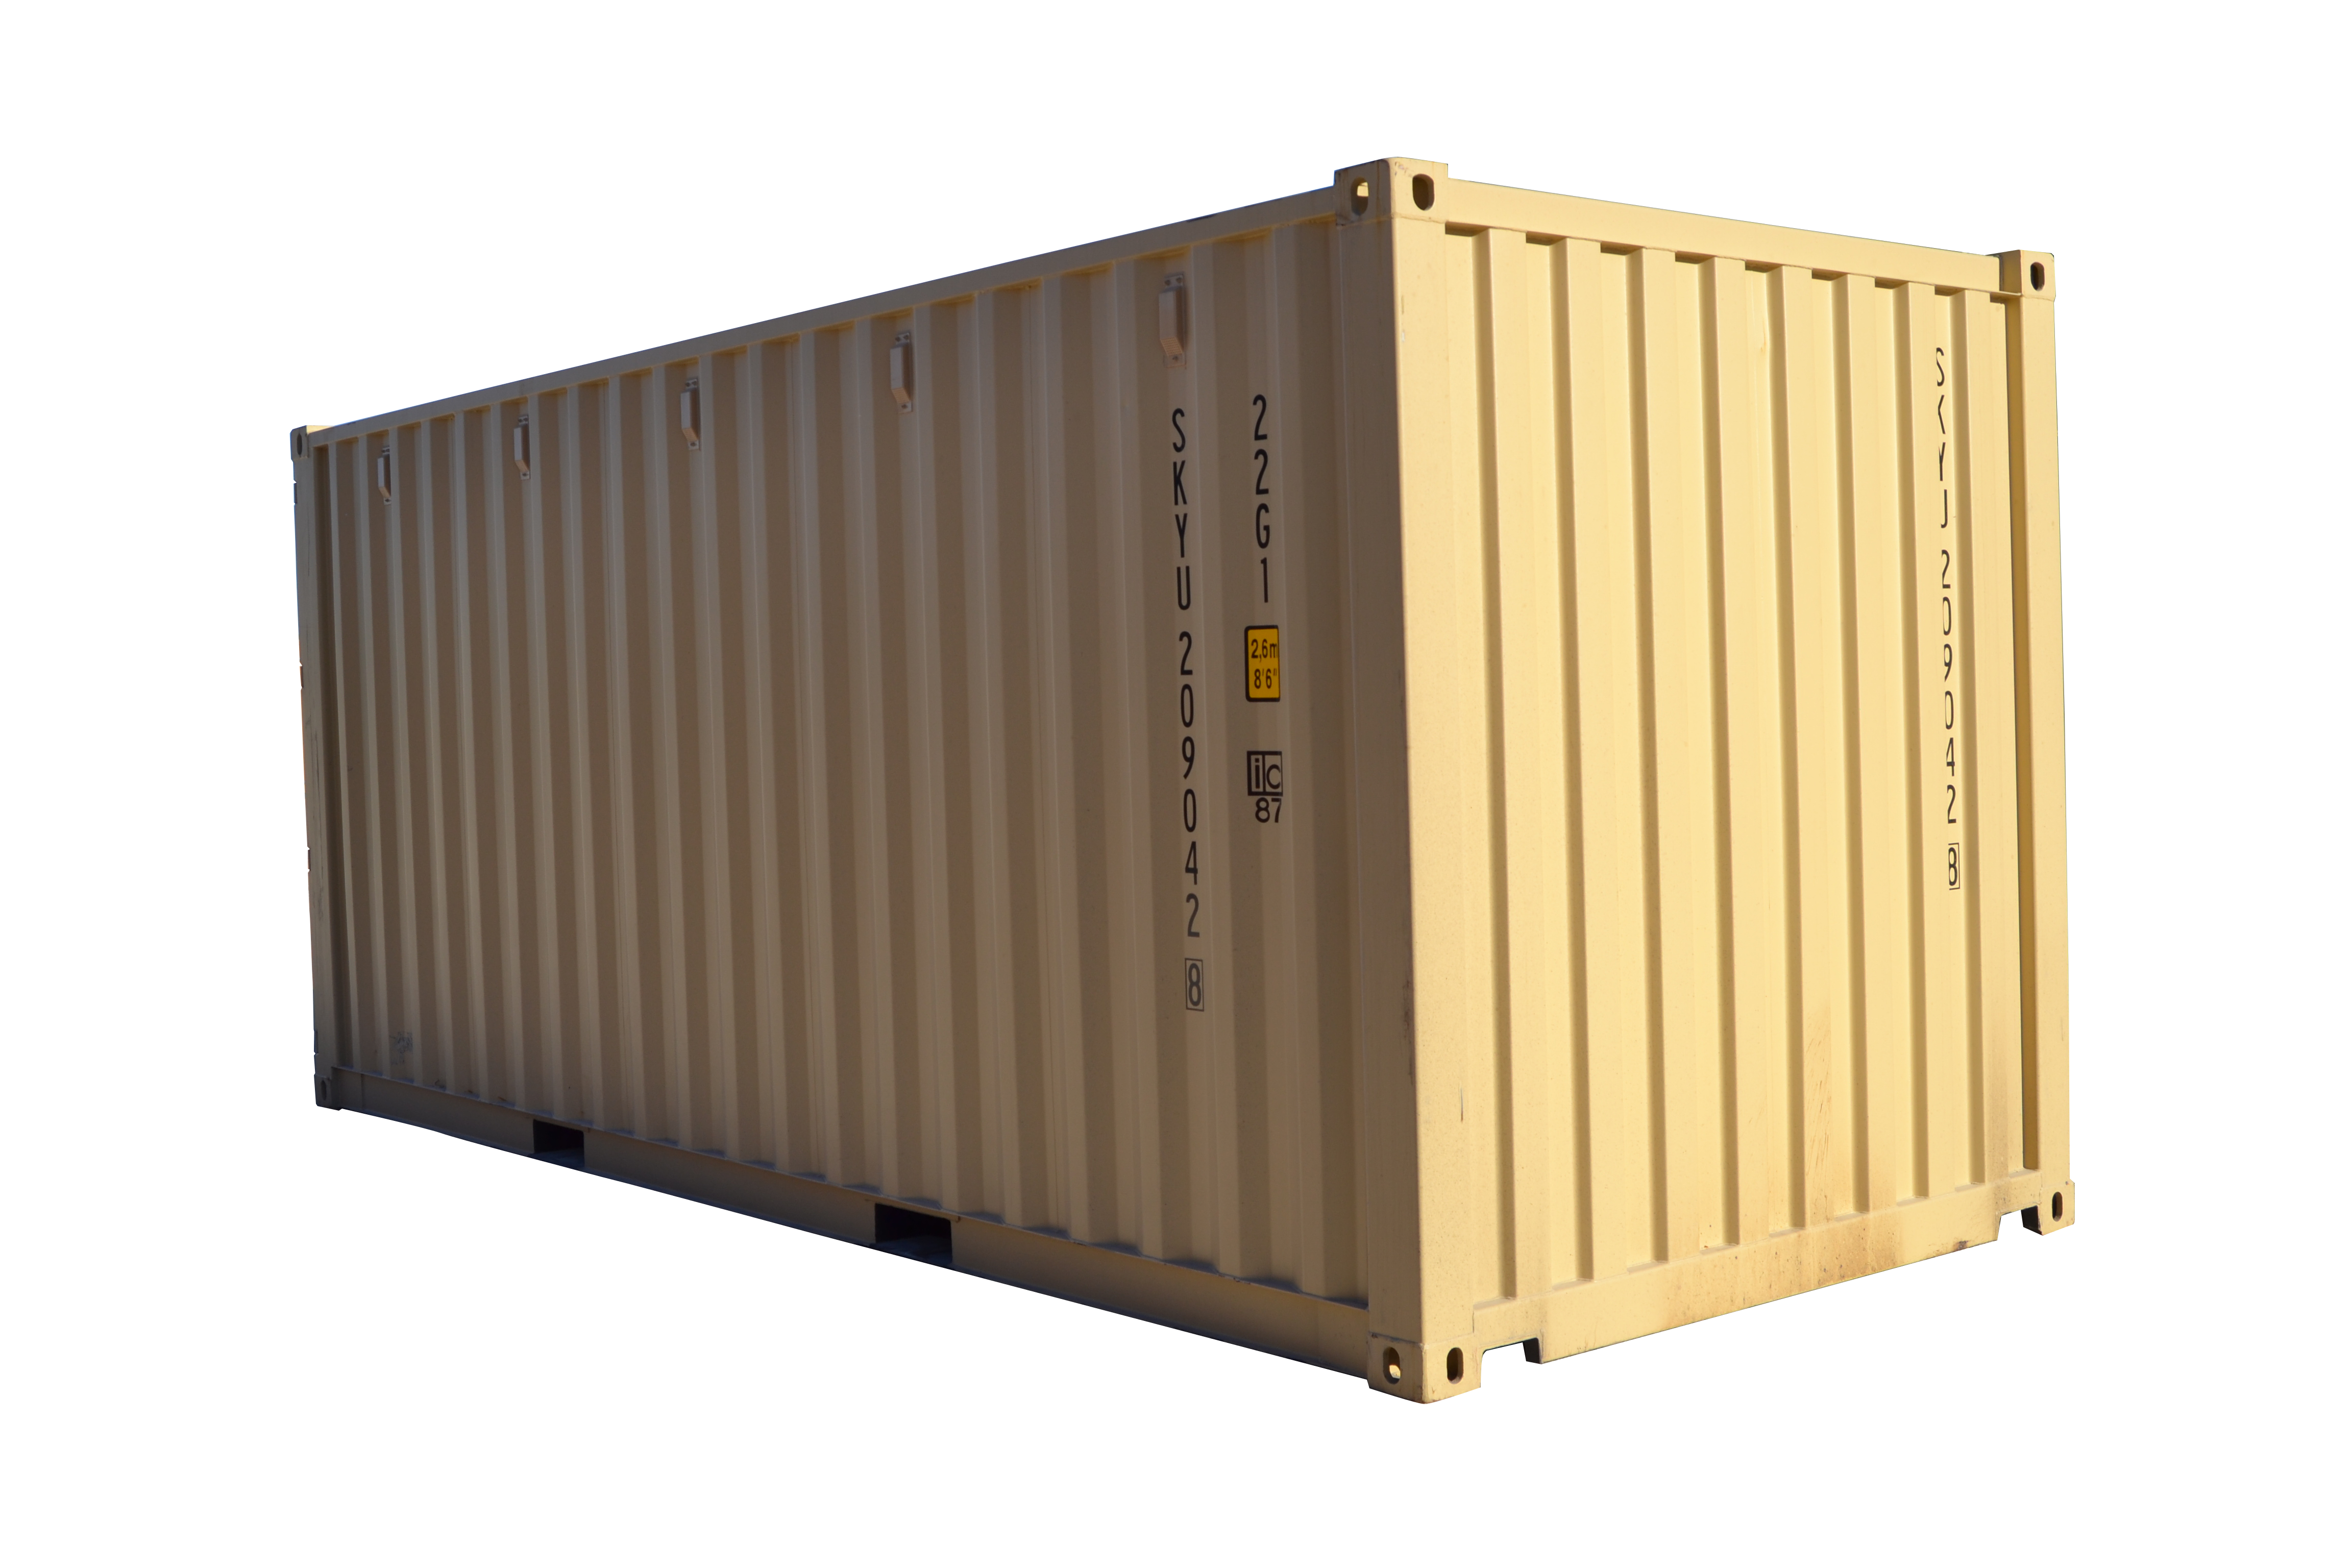 A one-trip 20-ft shipping container.